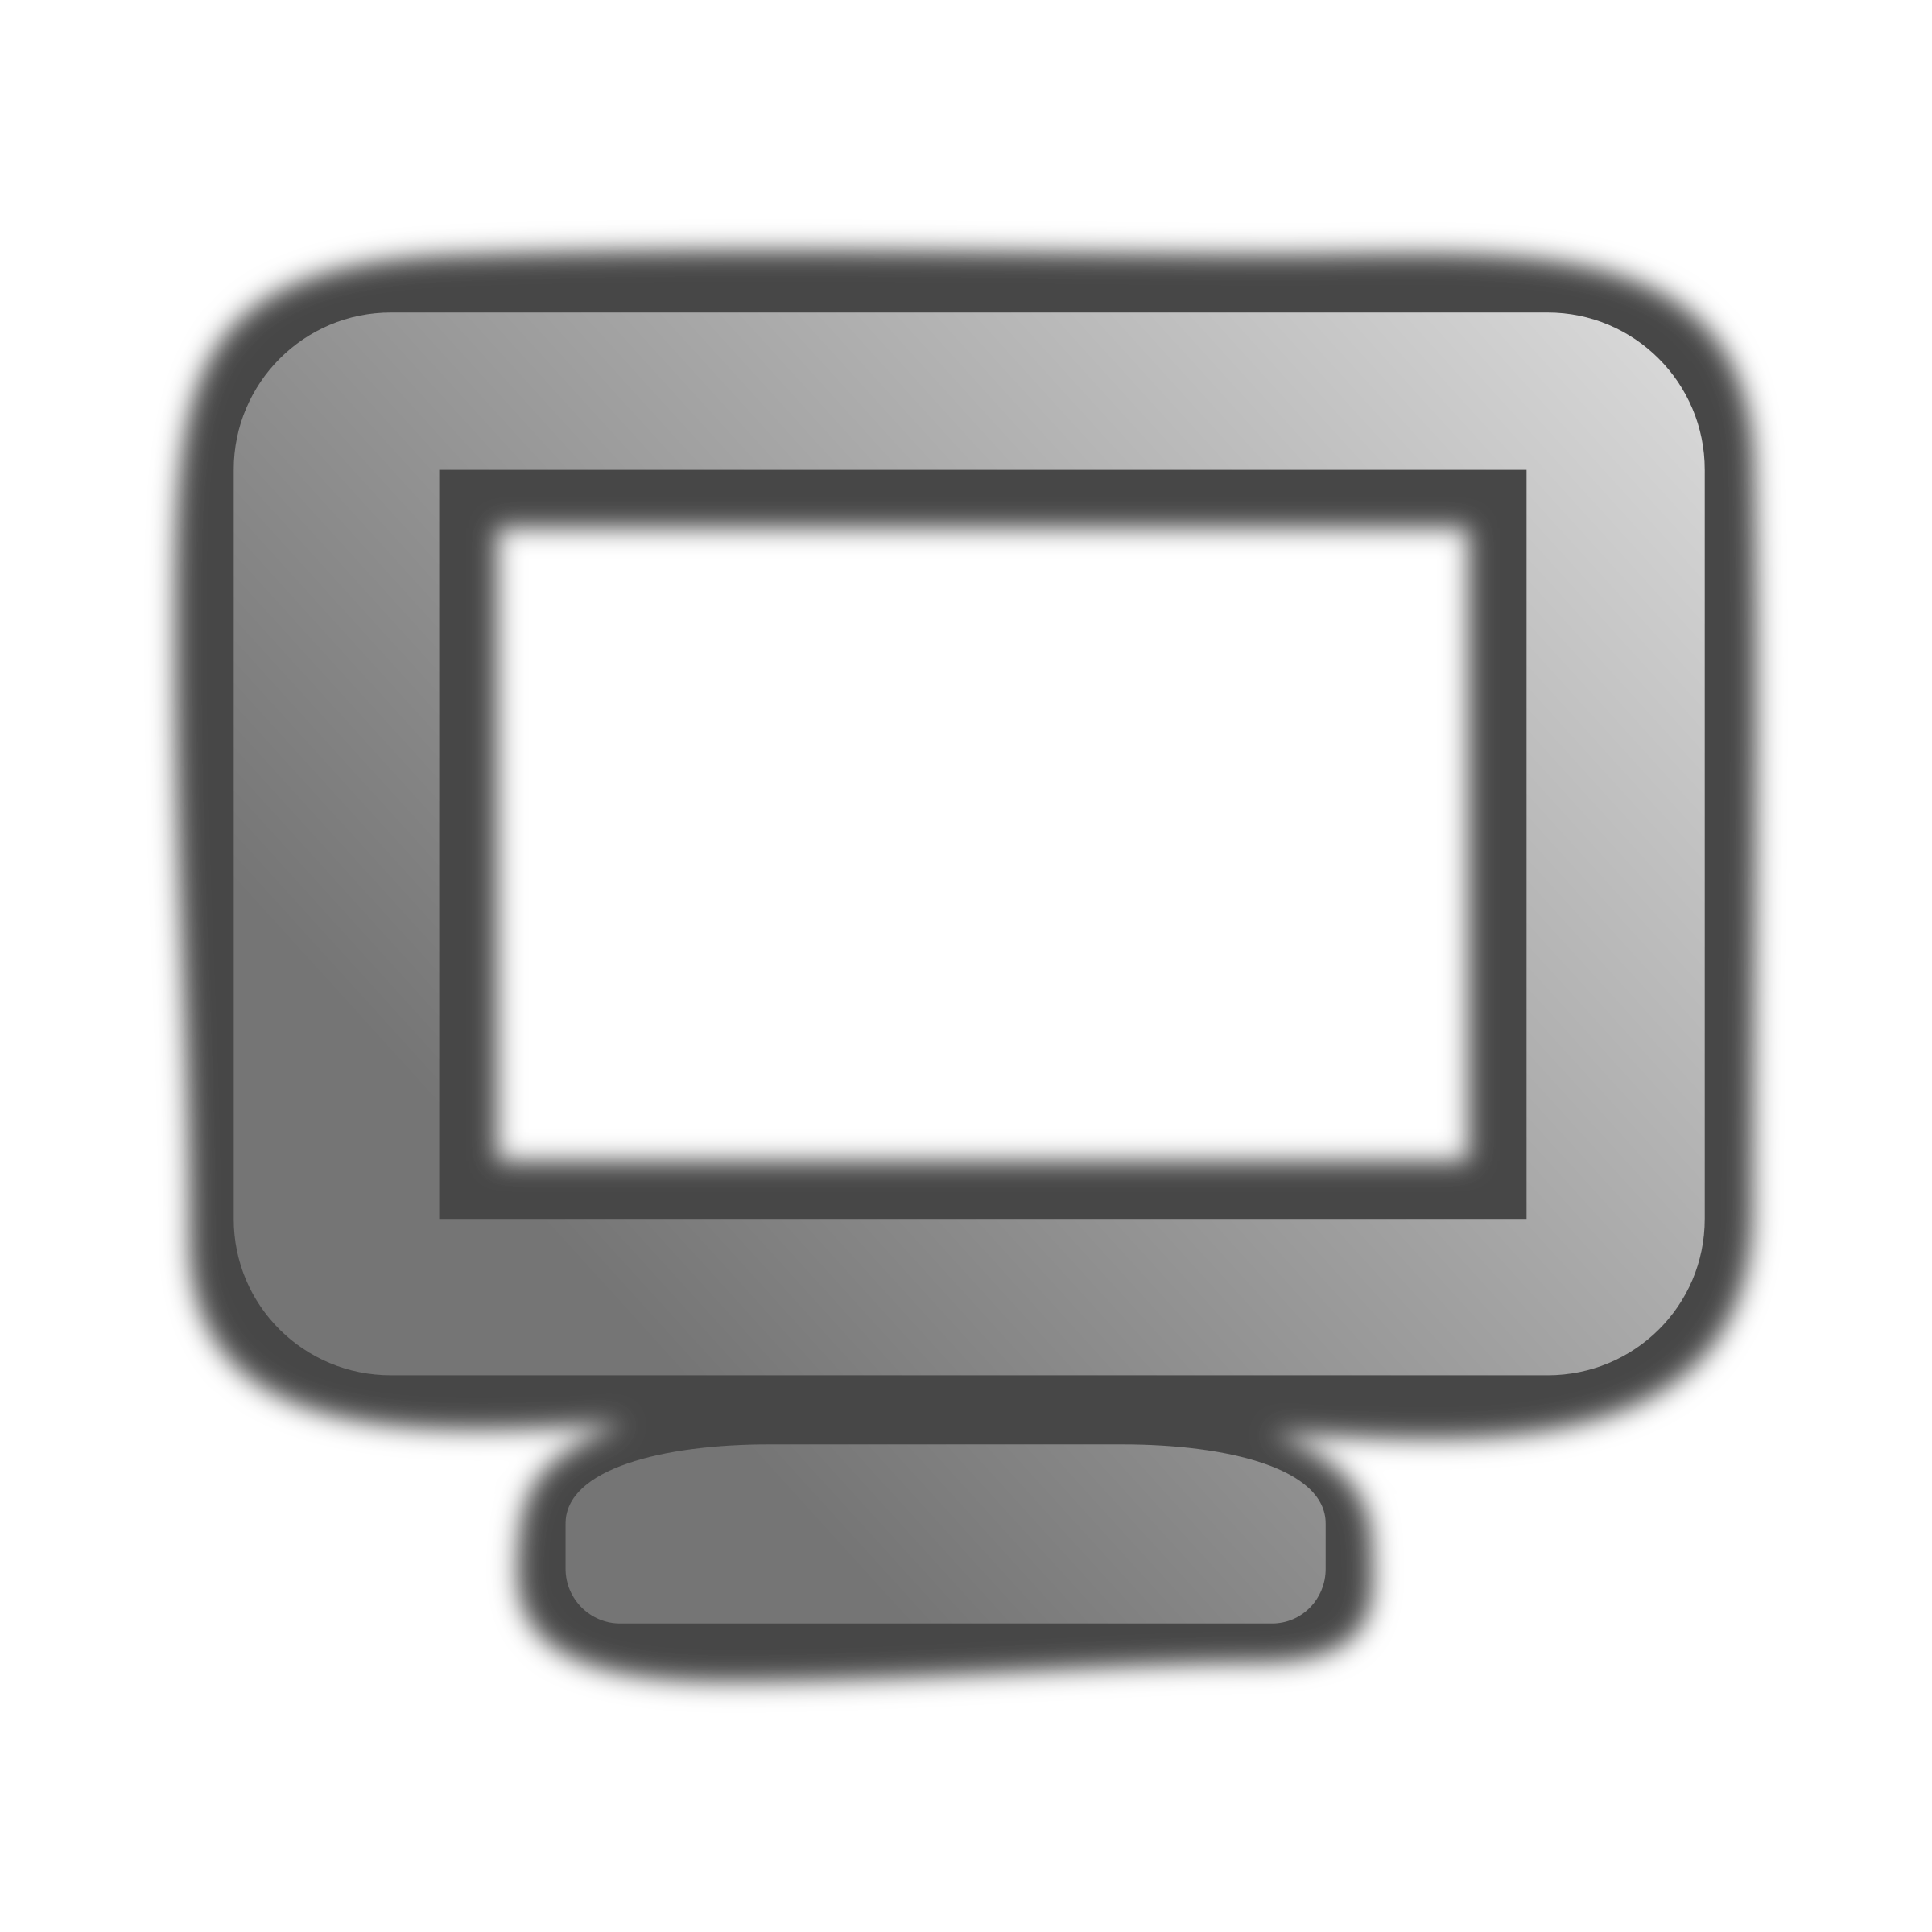 Computer clipart grey. Icon big image png